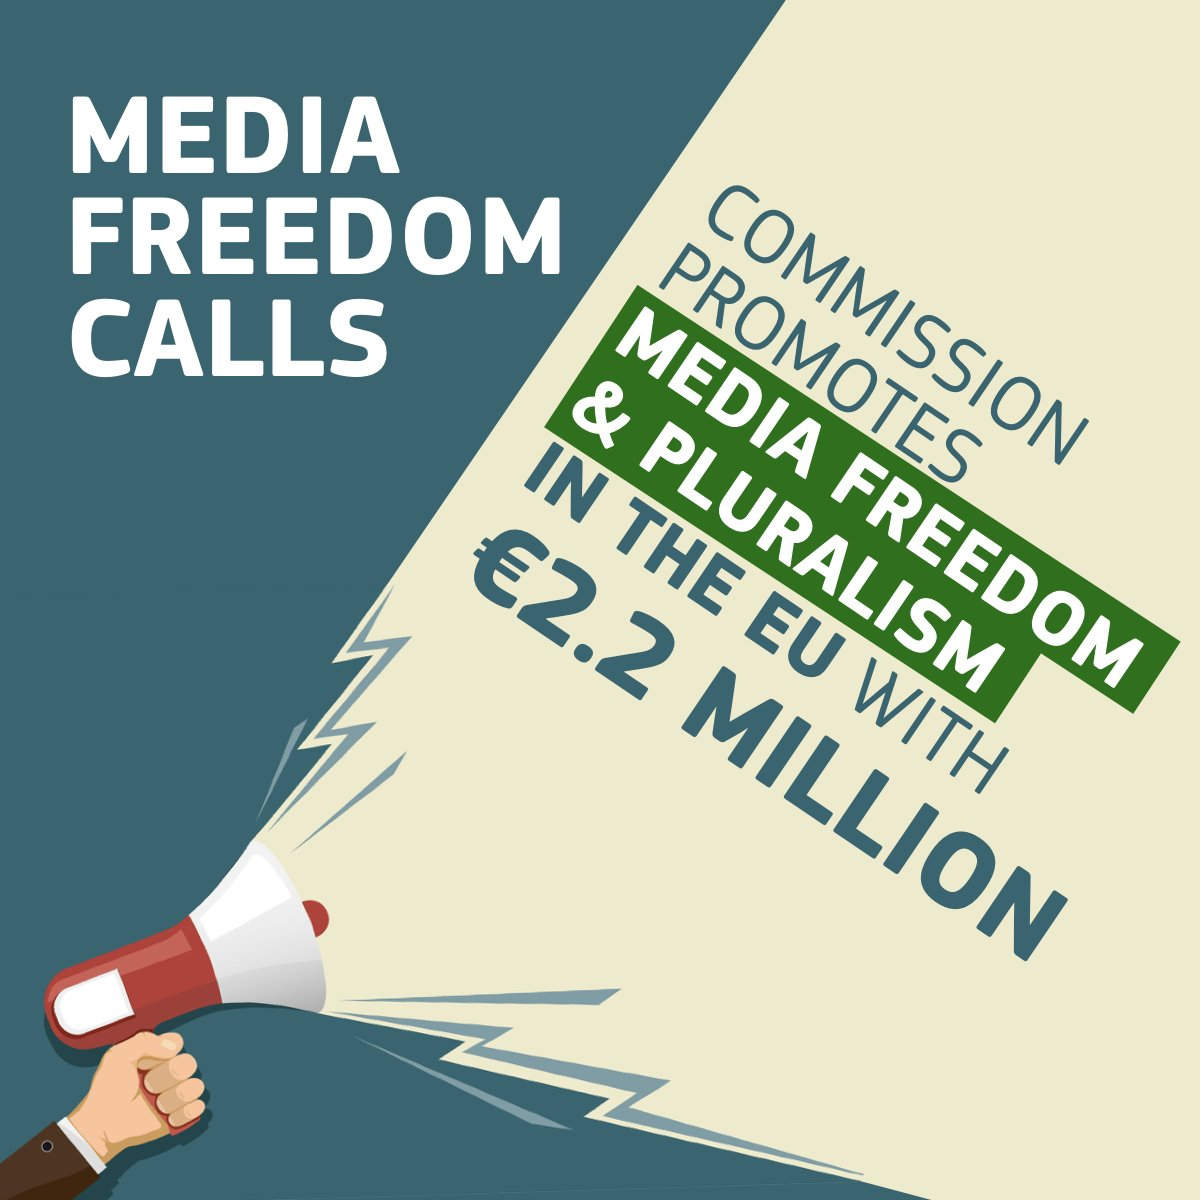 We promote and protect freedom of expression and quality journalism with no borders. Under #EUMediaCalls the  EU puts on the table €2.2 Million for projects on #mediafreedom and #pluralism   http:// bit.ly/EUmediaCalls  &nbsp;  <br>http://pic.twitter.com/ErlUZudyVs